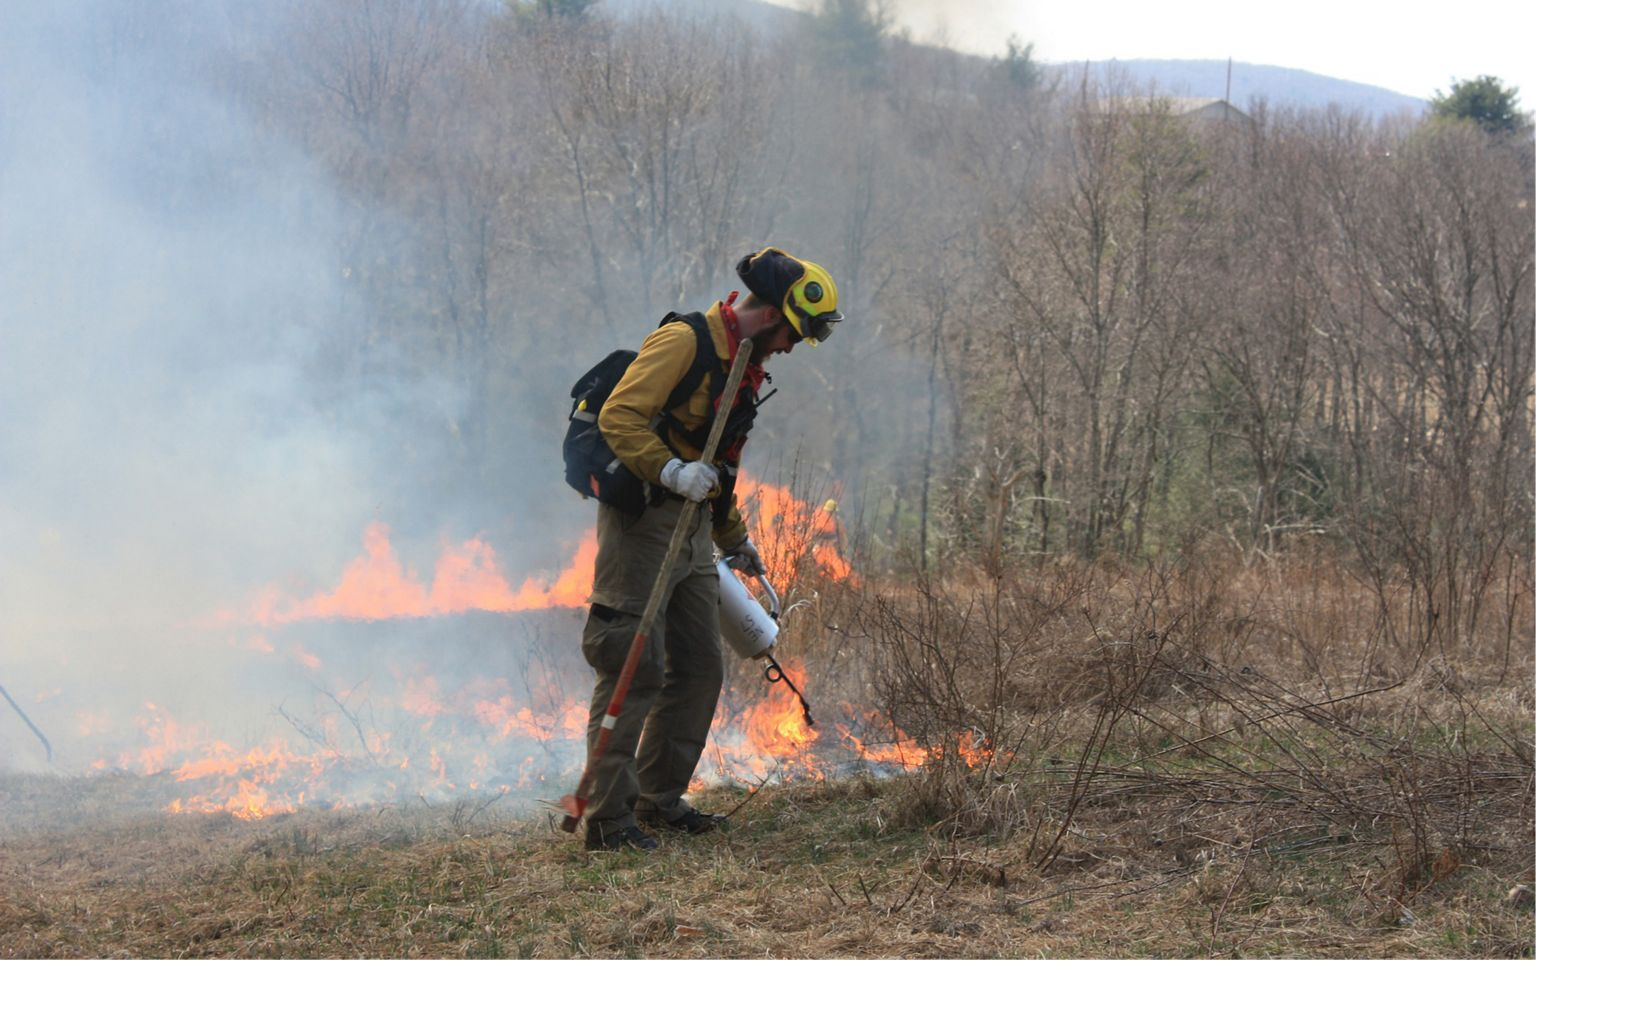 A member of the Pennsylvania fire team conducts a prescribed burn.